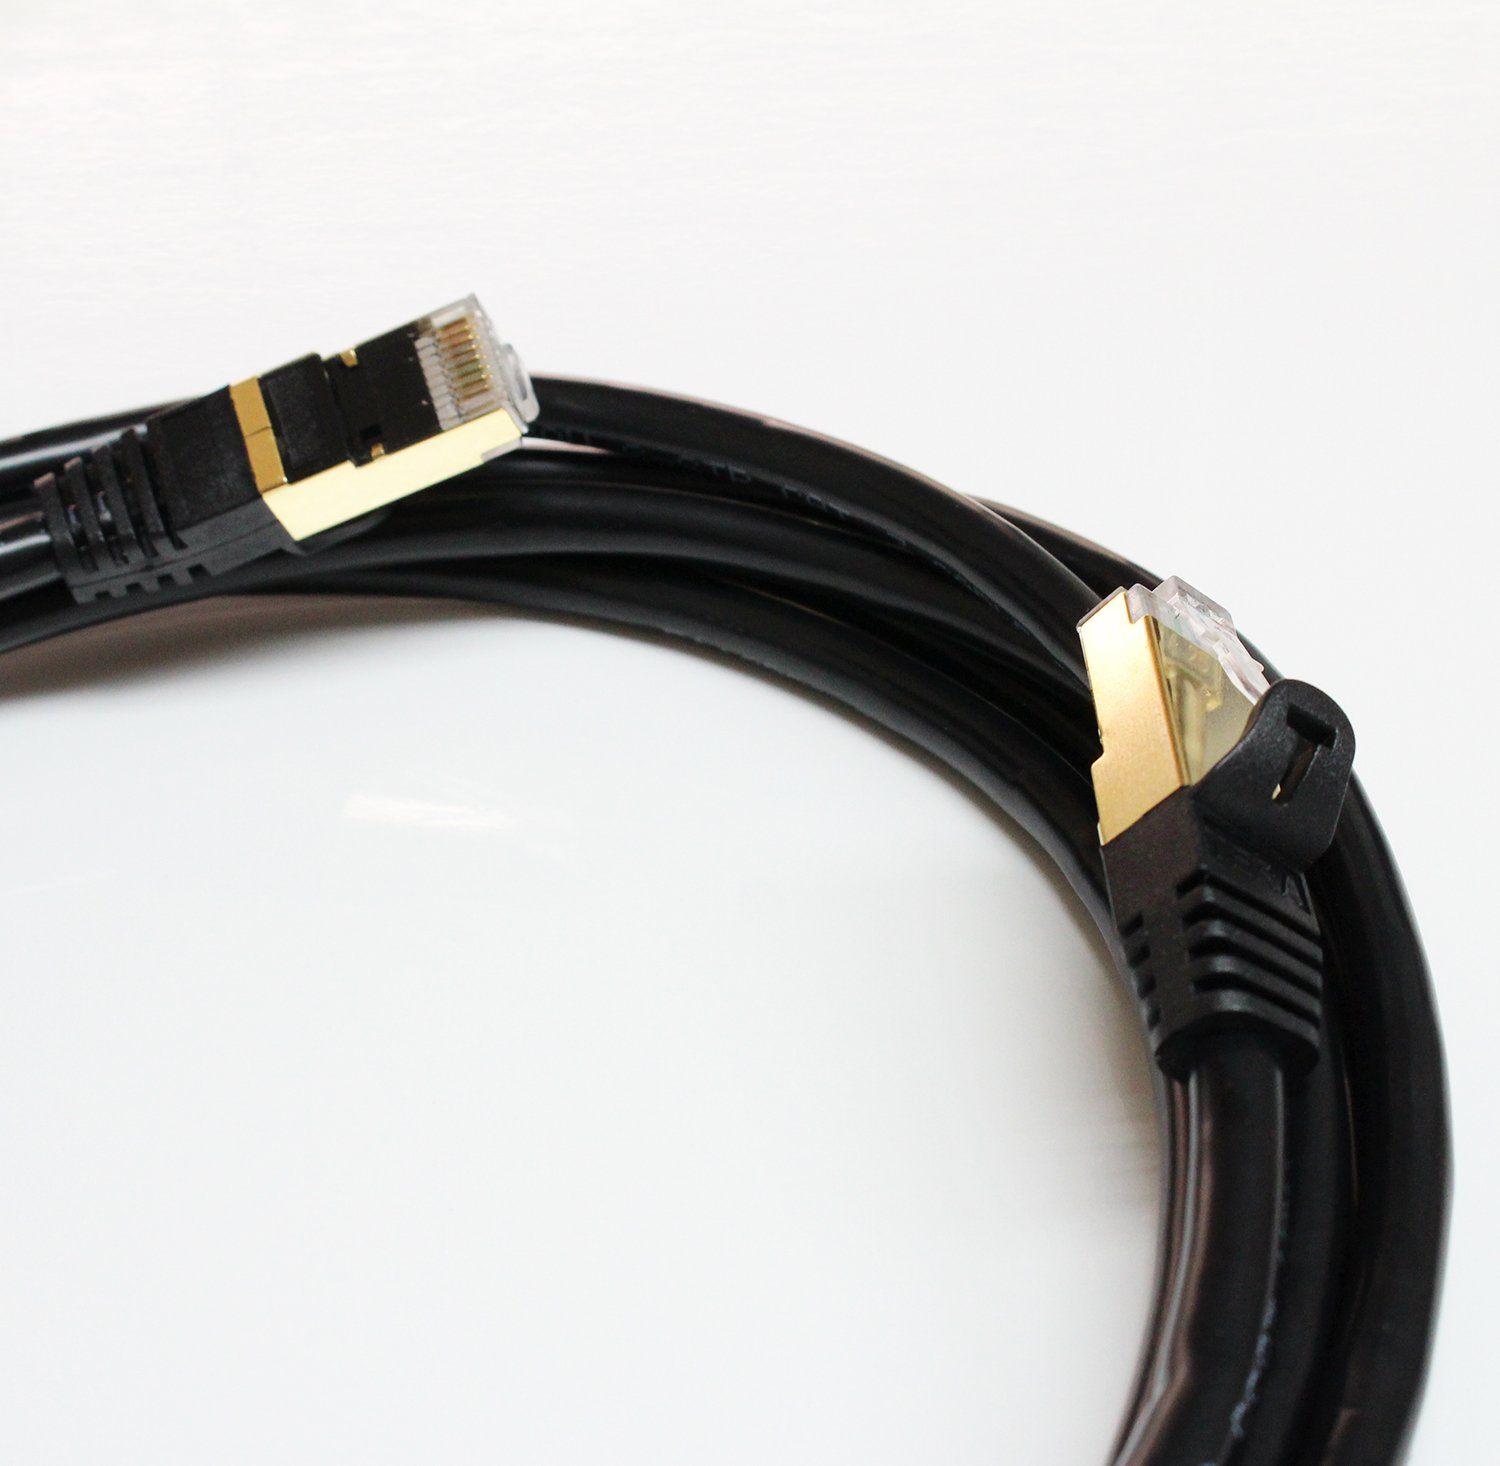 Tera Grand 7 Feet Black Premium CAT7 Double Shielded 10 Gigabit 600MHz Ethernet Patch Cable for Modem Router LAN Network Built with Gold Plated /& Shielded RJ45 Connectors